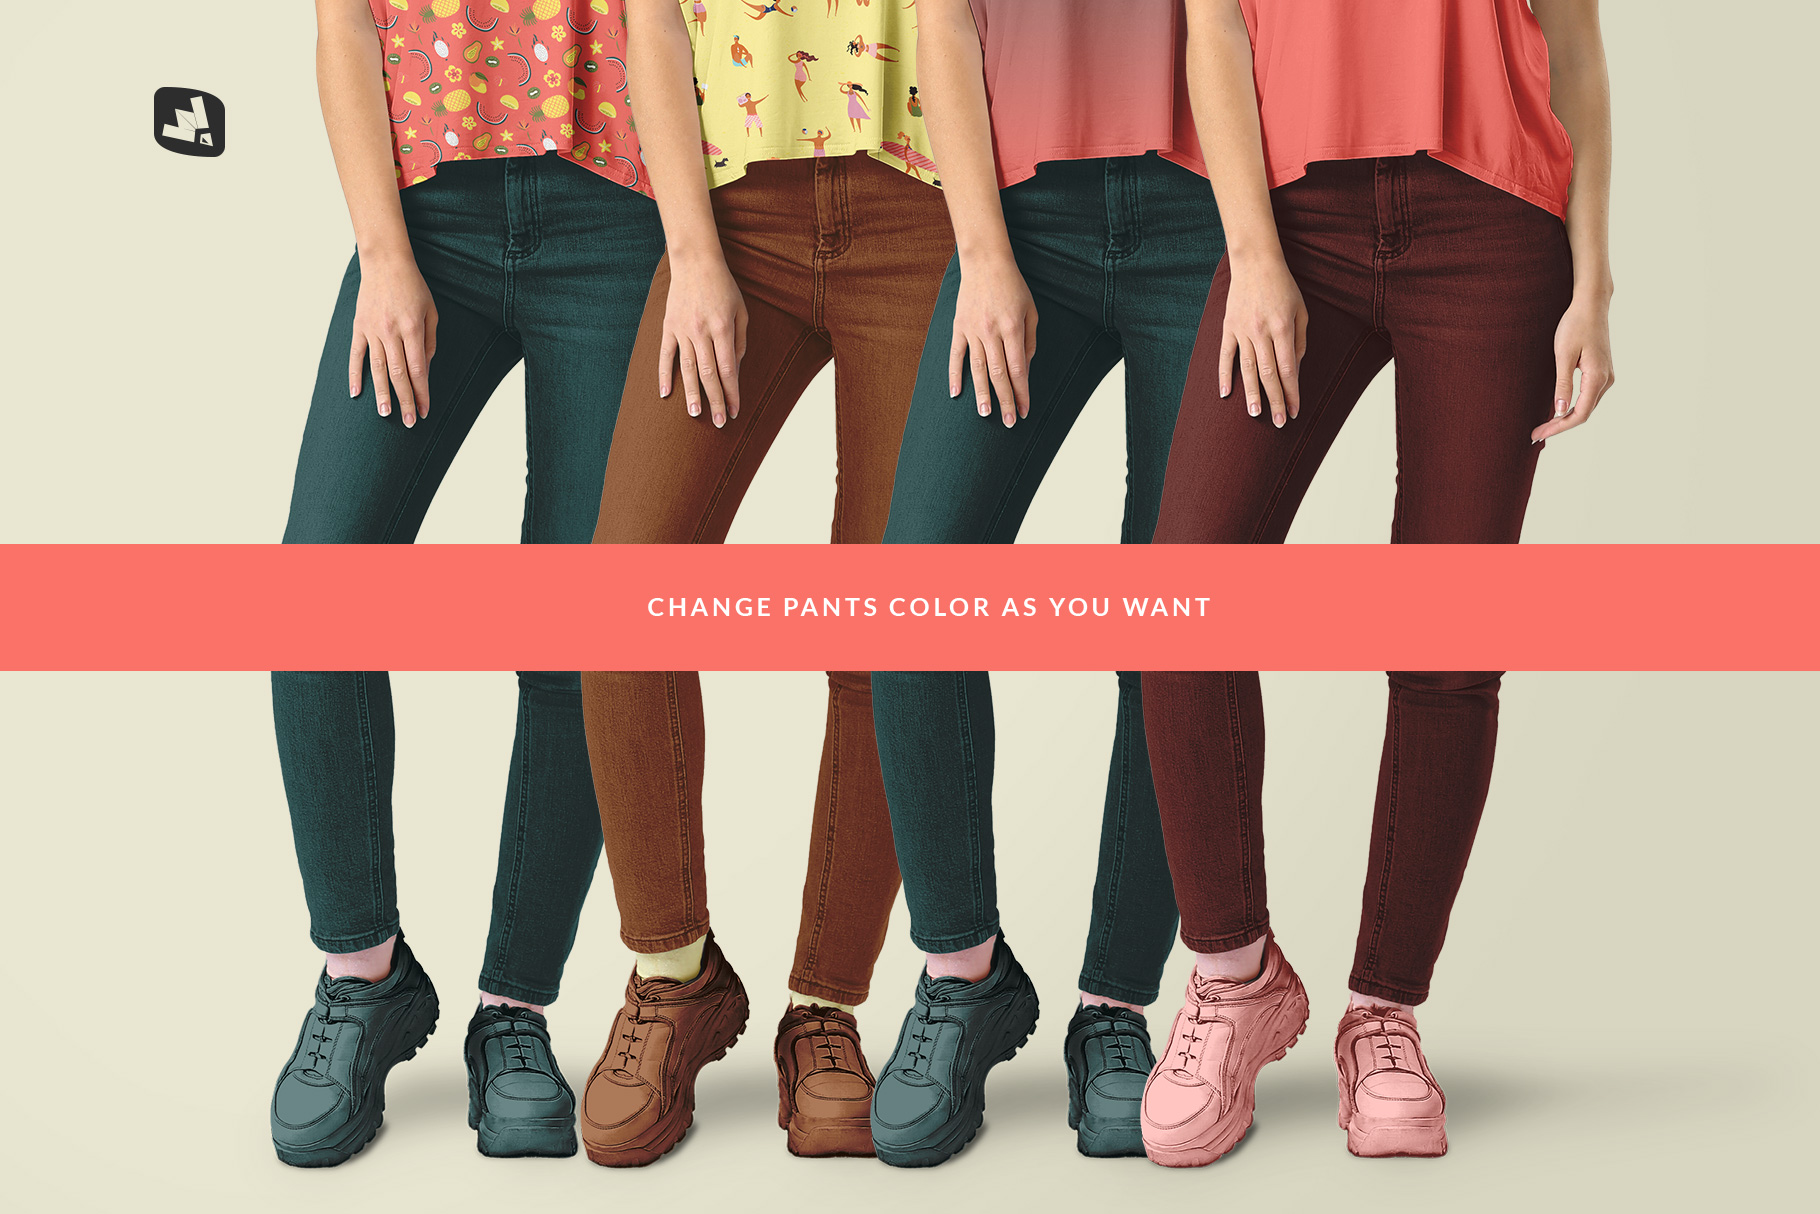 customizable pants socks and shoe color of the female everyday outfit mockup